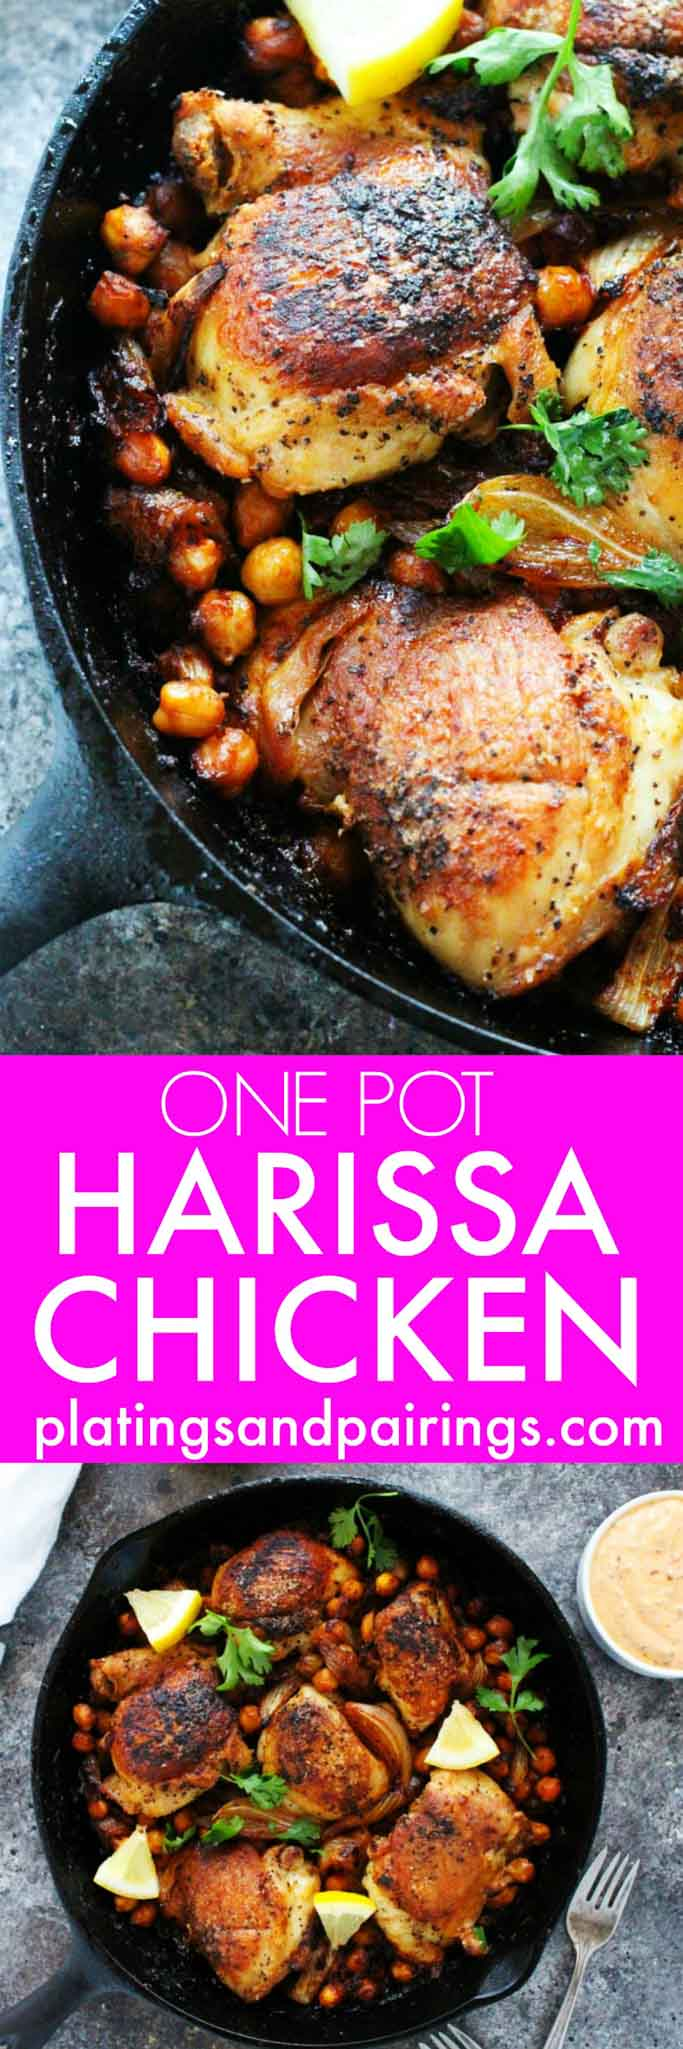 This One Pot Harissa Chicken with Chickpeas and Yogurt is a fuss free dish that's easy to make at home. Spicy, fragrant harissa reduces and coats the chicken and chickpeas as they roast, and a creamy yogurt harissa sauce finishes it all off. | platingsandpairings.com